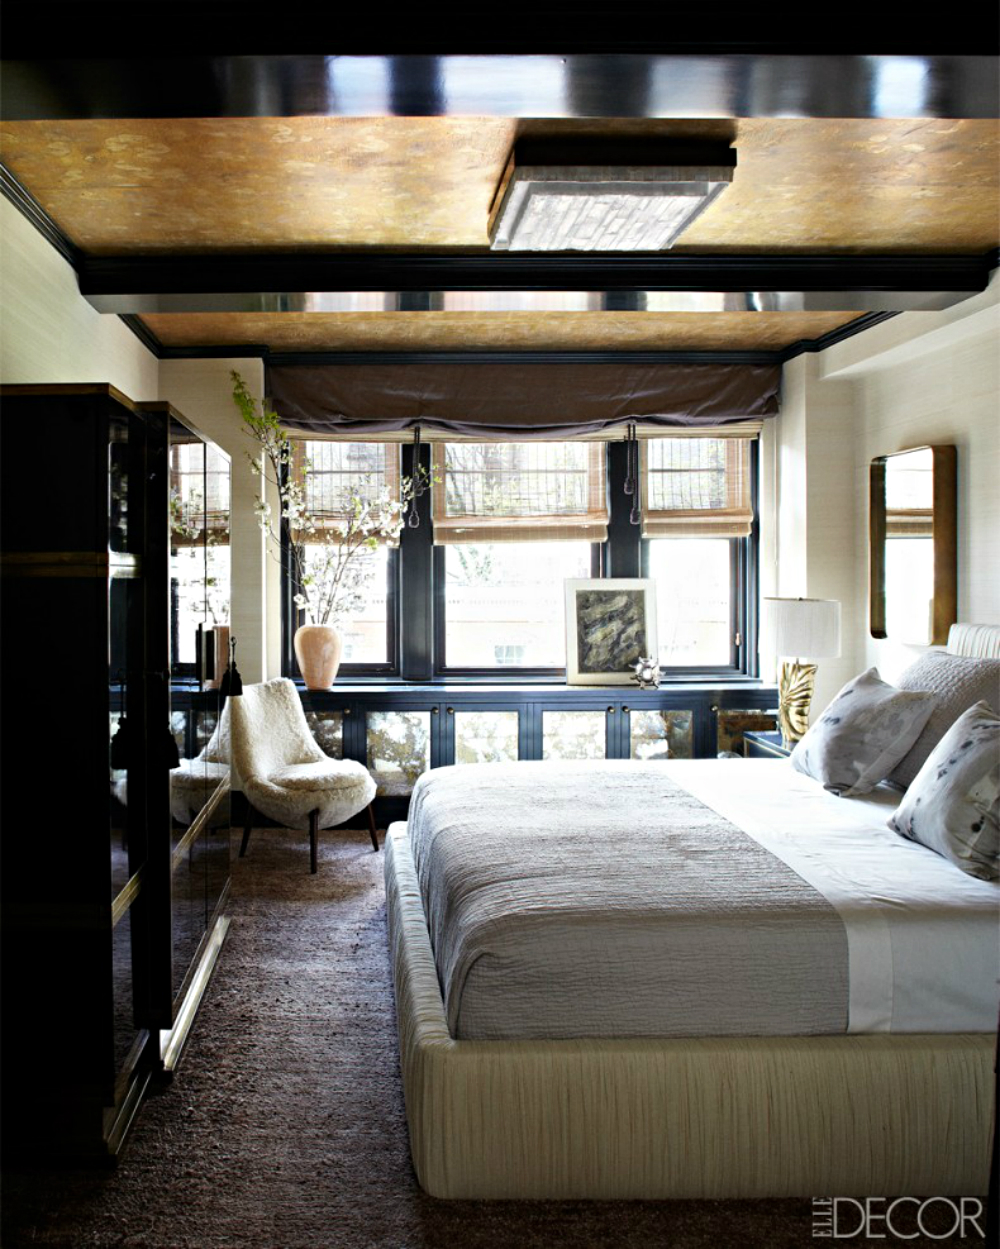 5 Celebrity Bedrooms That Will Blow Your Mind celebrity bedrooms 5 Celebrity Bedrooms That Will Blow Your Mind 5 Celebrity Bedroom Designs That Will Blow Your Mind